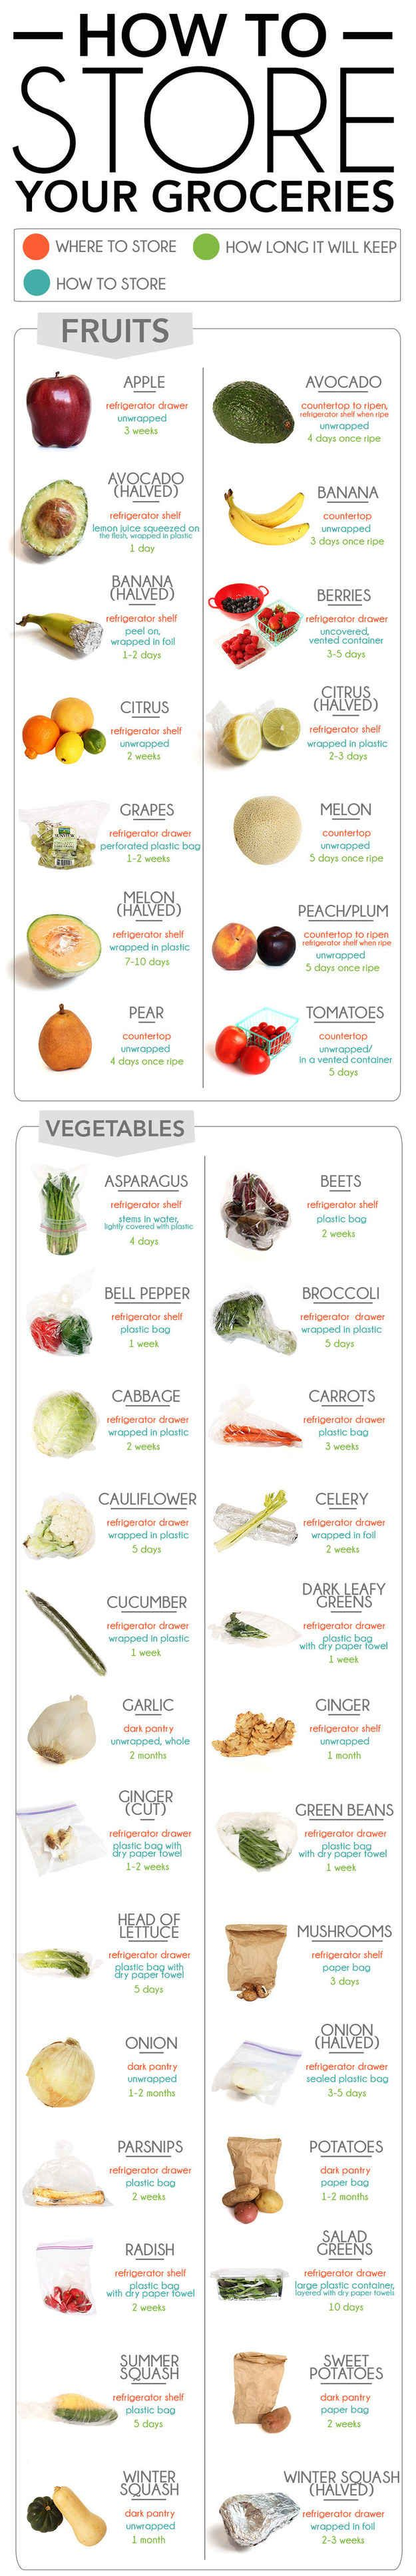 17 charts to eat healthy. For keeping your fruits and veggies fresh as long as possible.